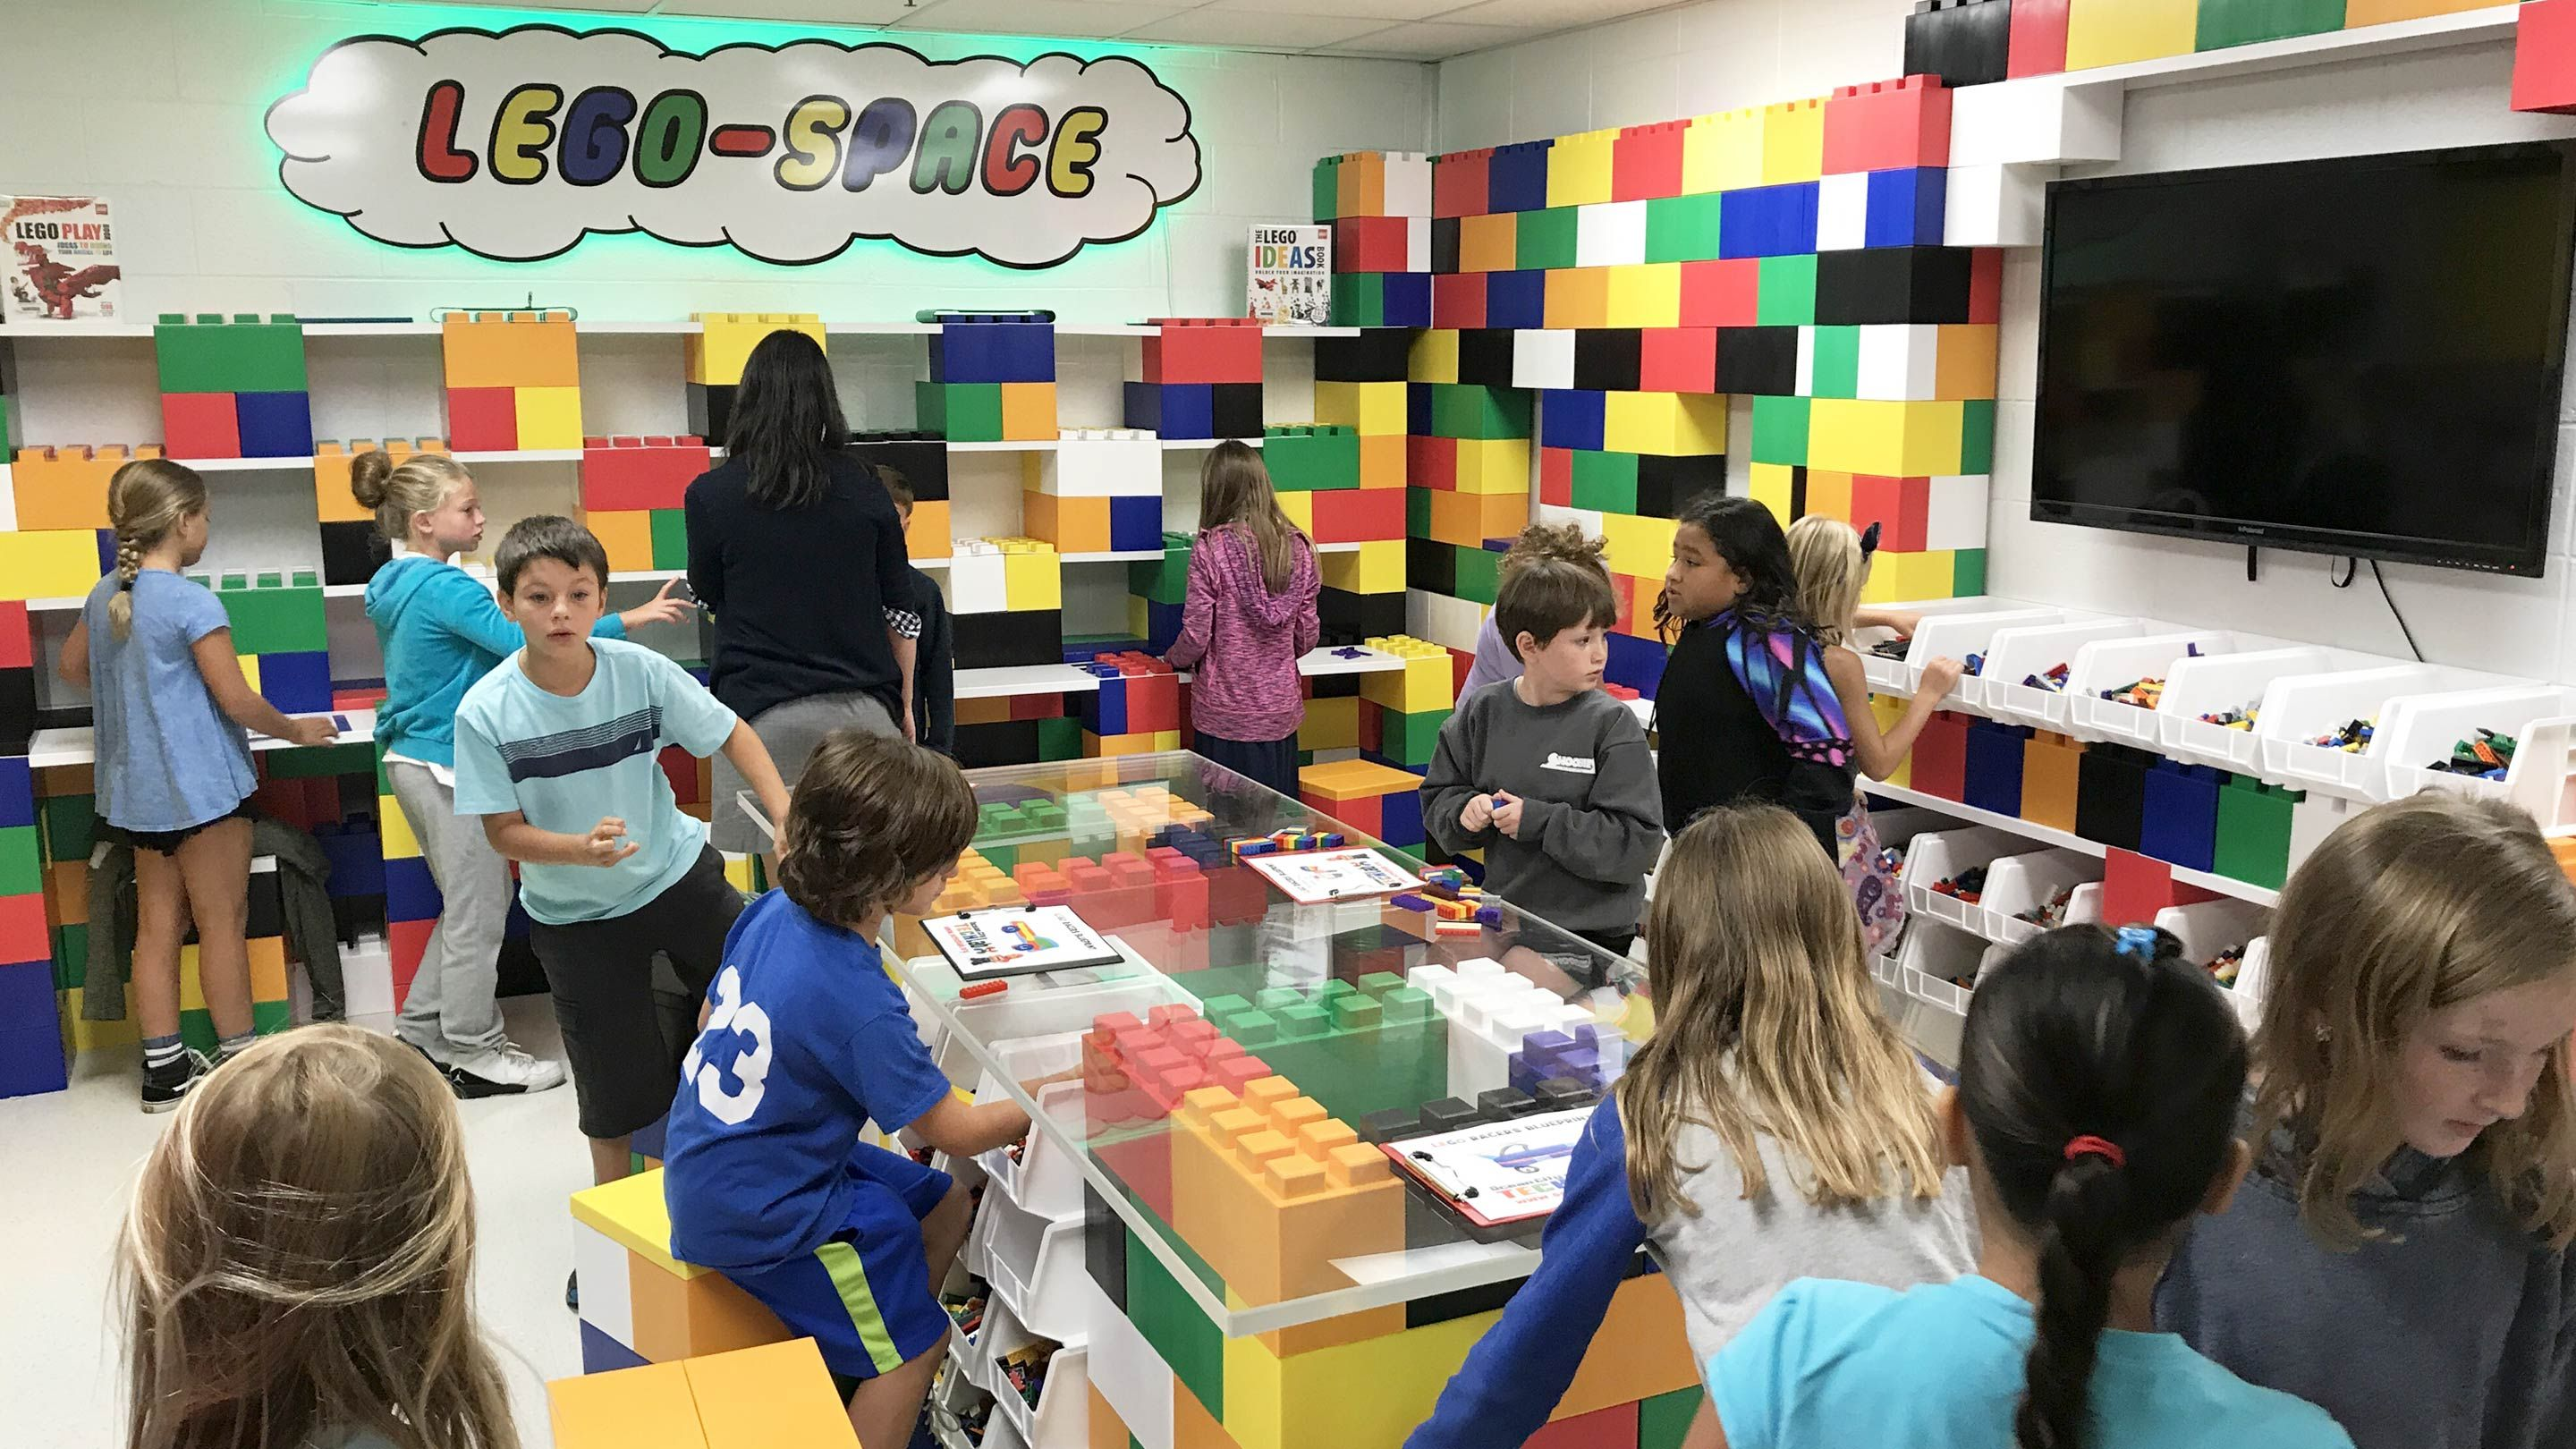 A Makerspace Built by Elementary Students | Edutopia